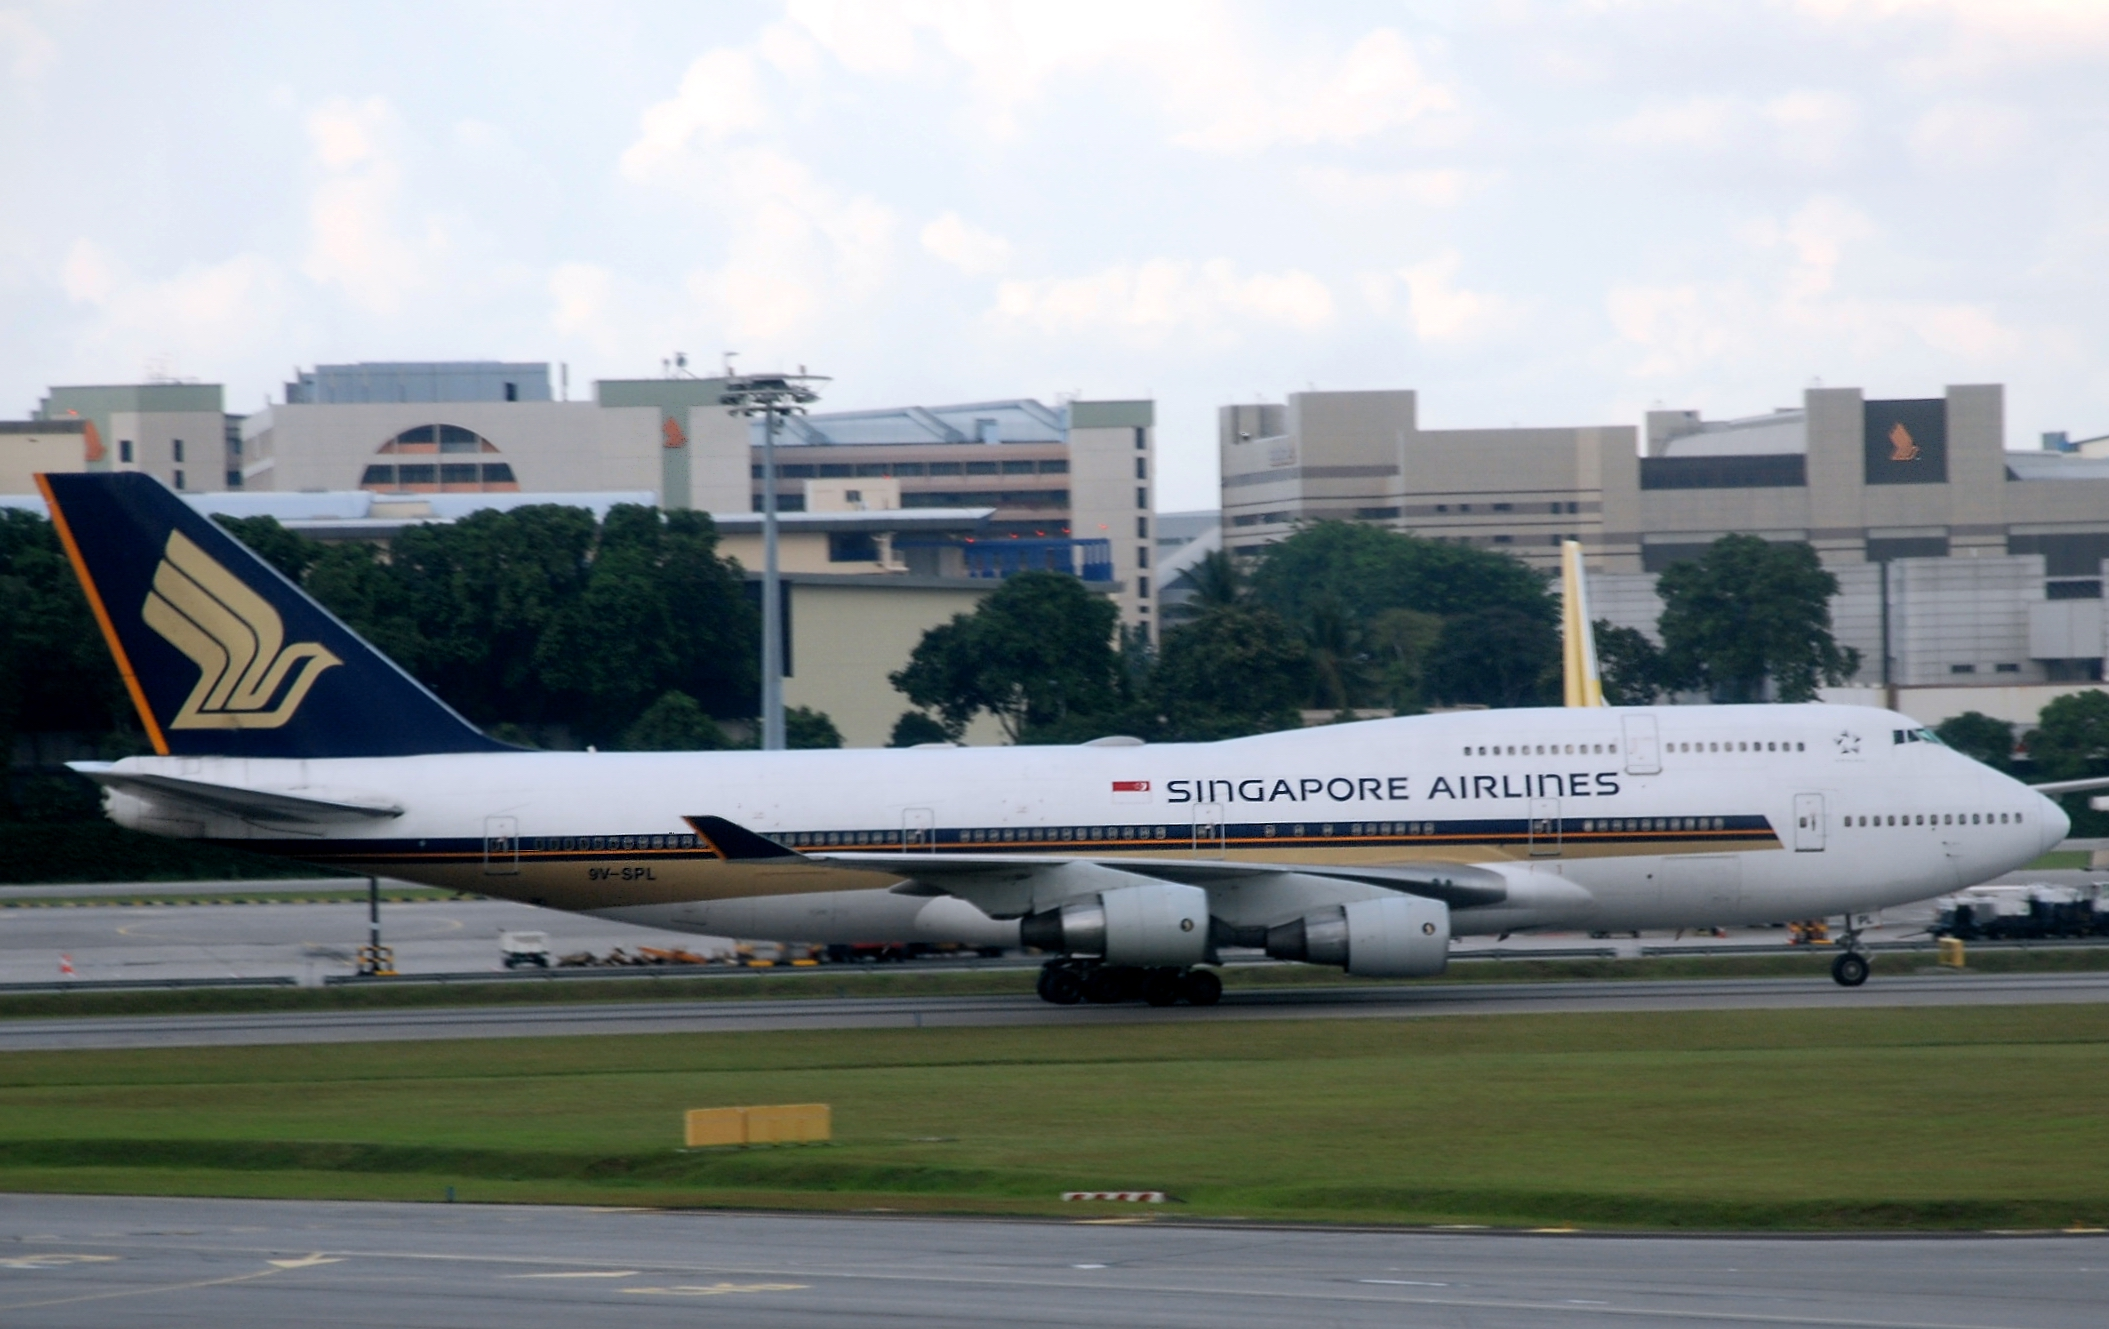 singapore airlines accidents A singapore airlines airbus with 182 passengers and 12 crew on board lost power to both engines en route to shanghai - falling 3,962m (13,000ft) - the airline said on wednesday as it announced an .